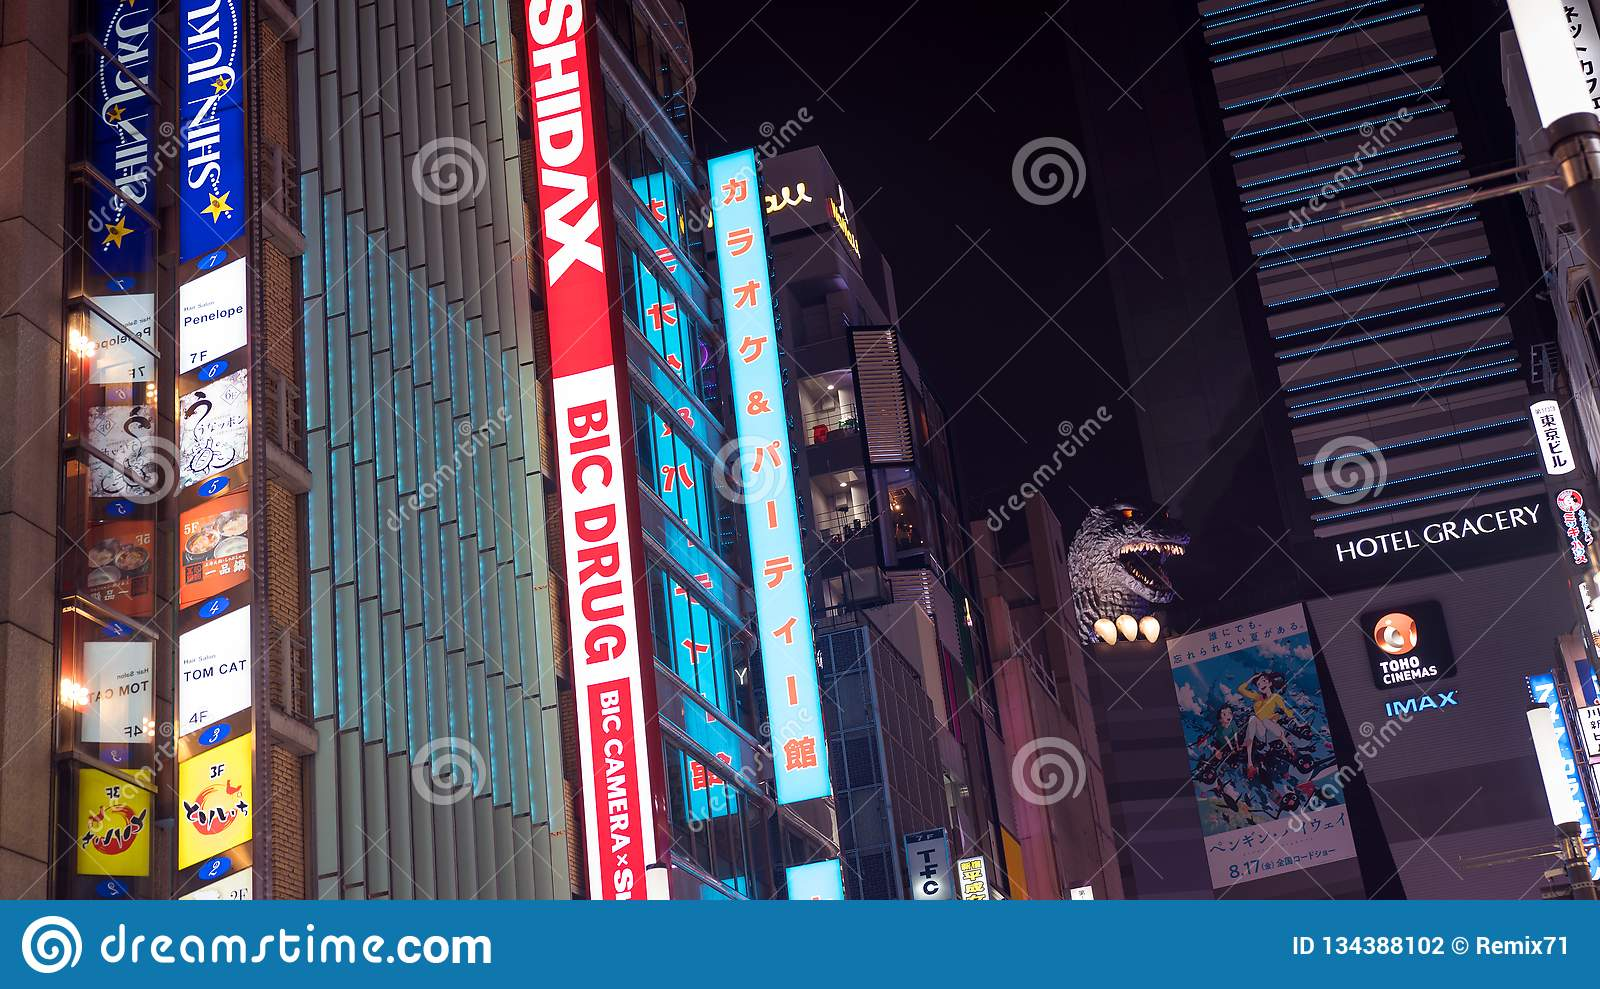 Godzilla junction is a famous place in Shinjuku Tokyo with entertainment, bar and restaurant zone, Tokyo, Japan